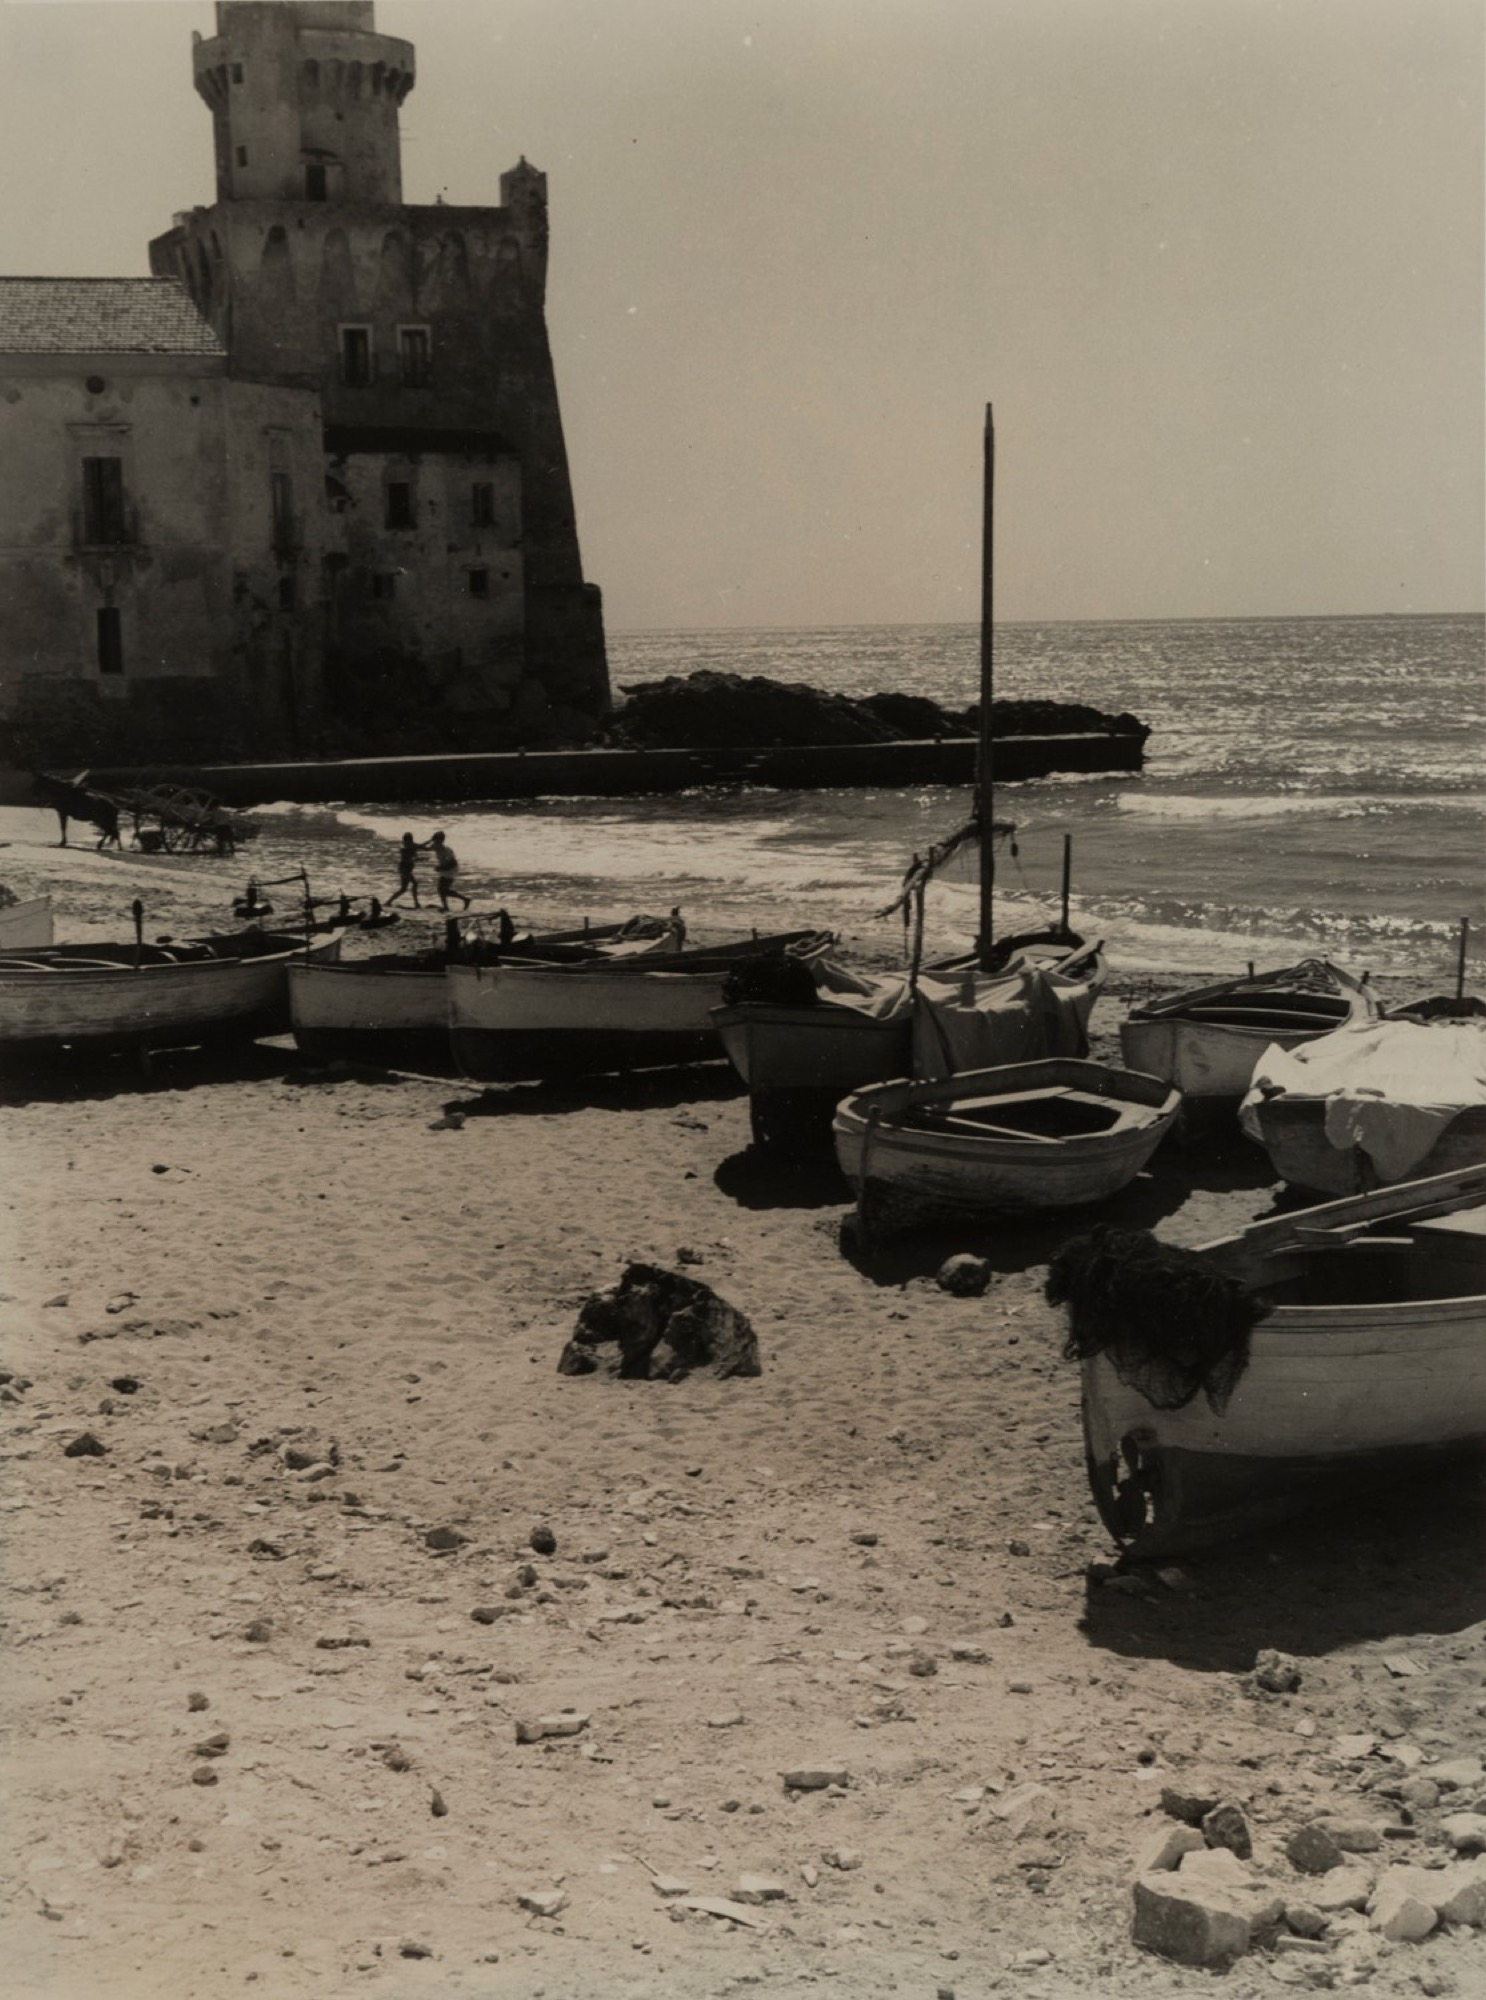 Giulio Parisio - Landscapes, years 1930/1940 - Eight vintage gelatin silver prints [...] - Image 4 of 9